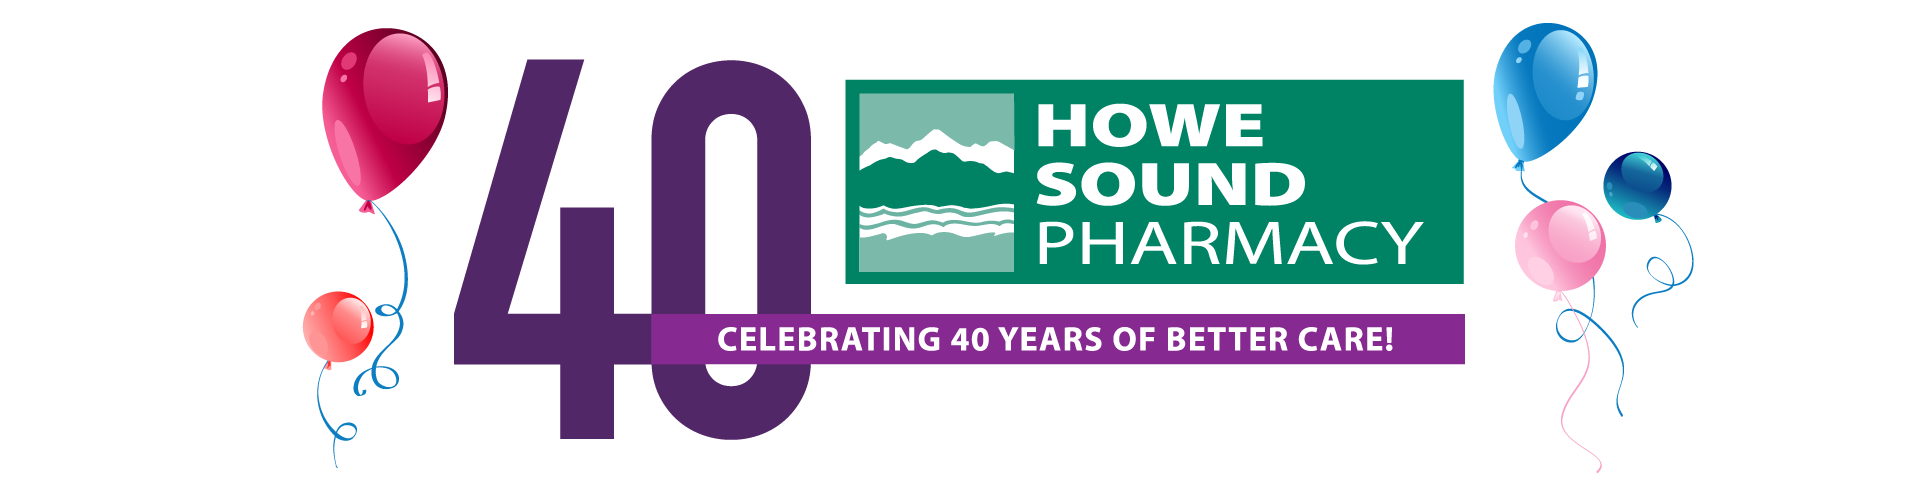 howe-sound-pharmacy-40-years-hs